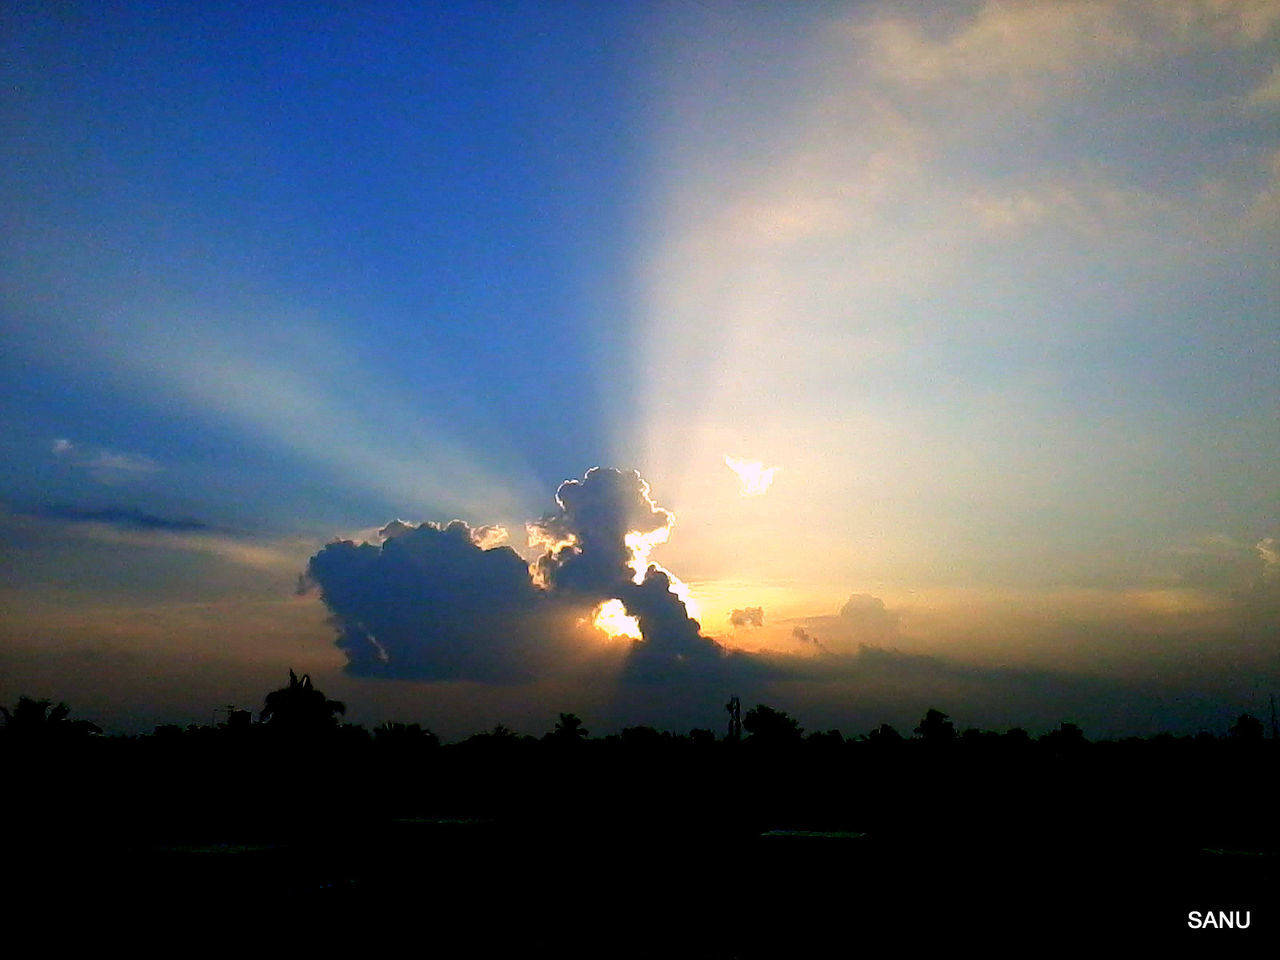 sunset, silhouette, sky, nature, outdoors, no people, beauty in nature, day